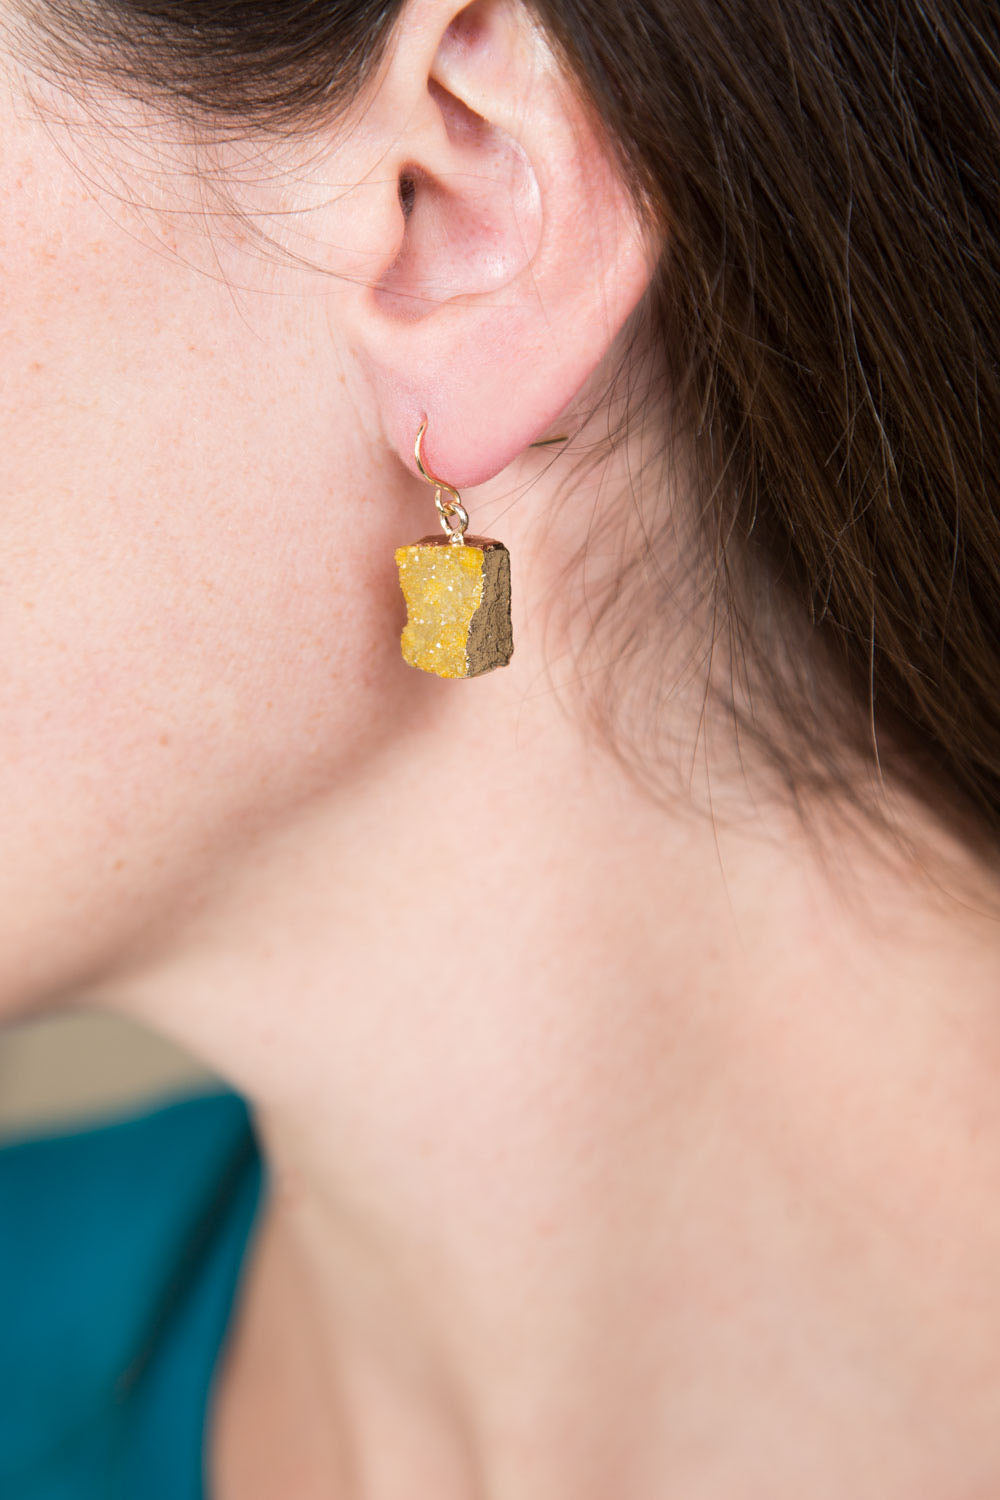 Type 3 Verdant Ore Earrings